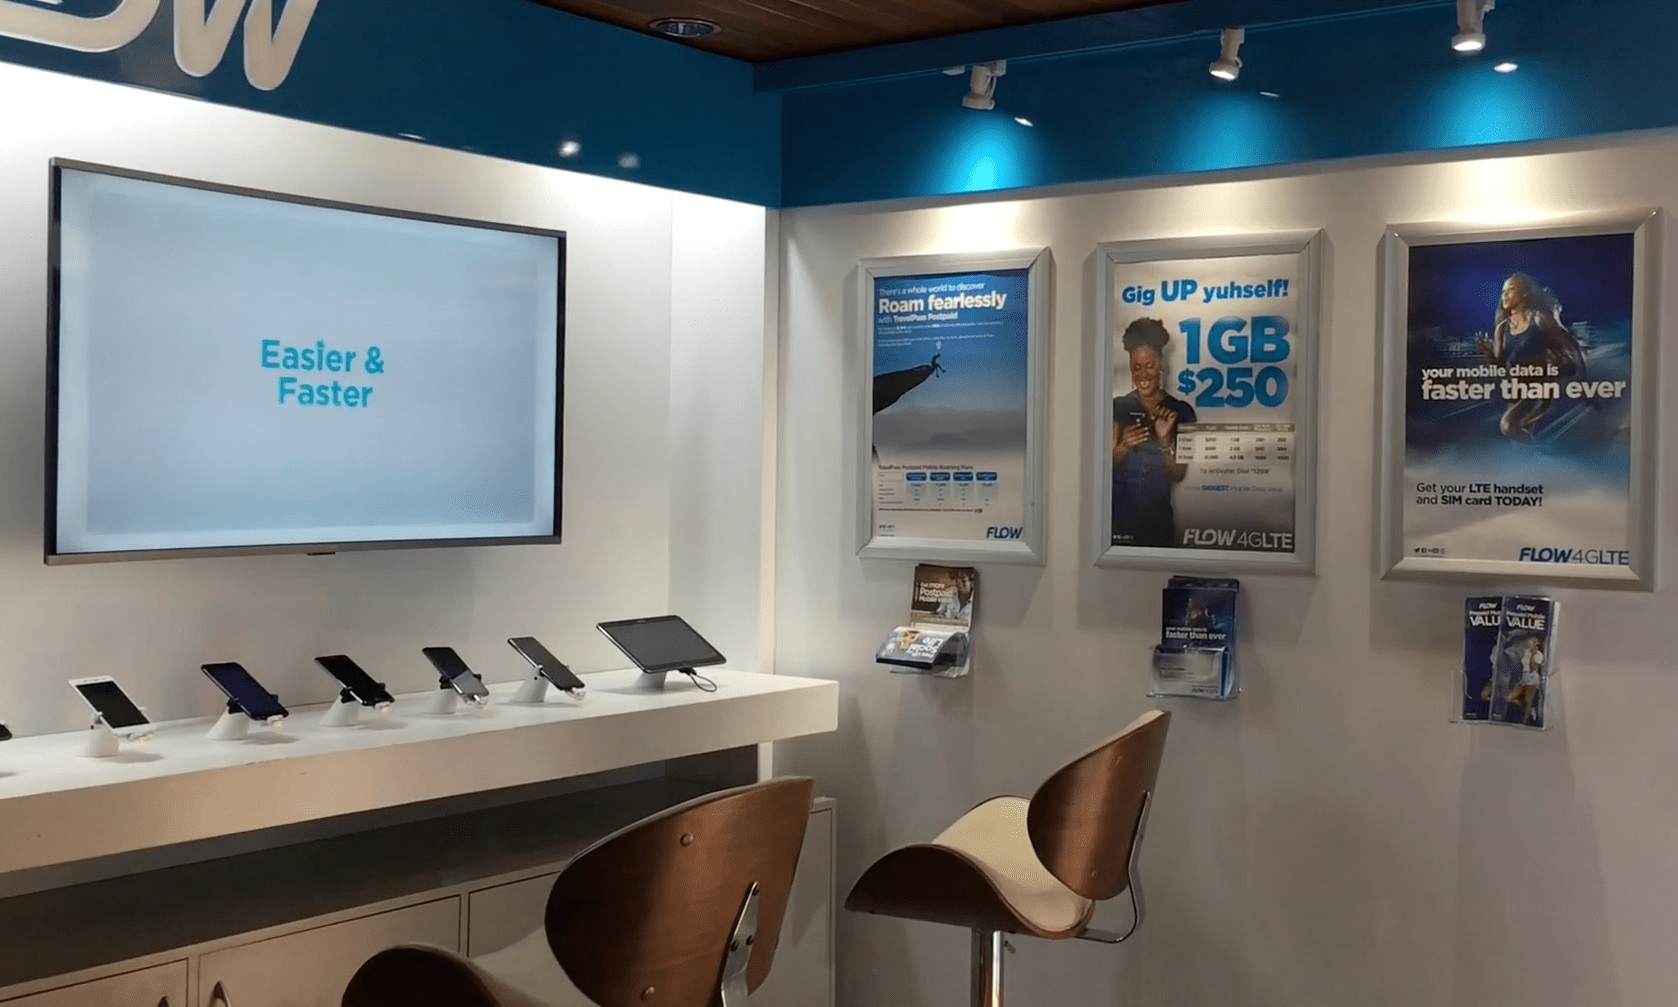 FLOW Experience Center